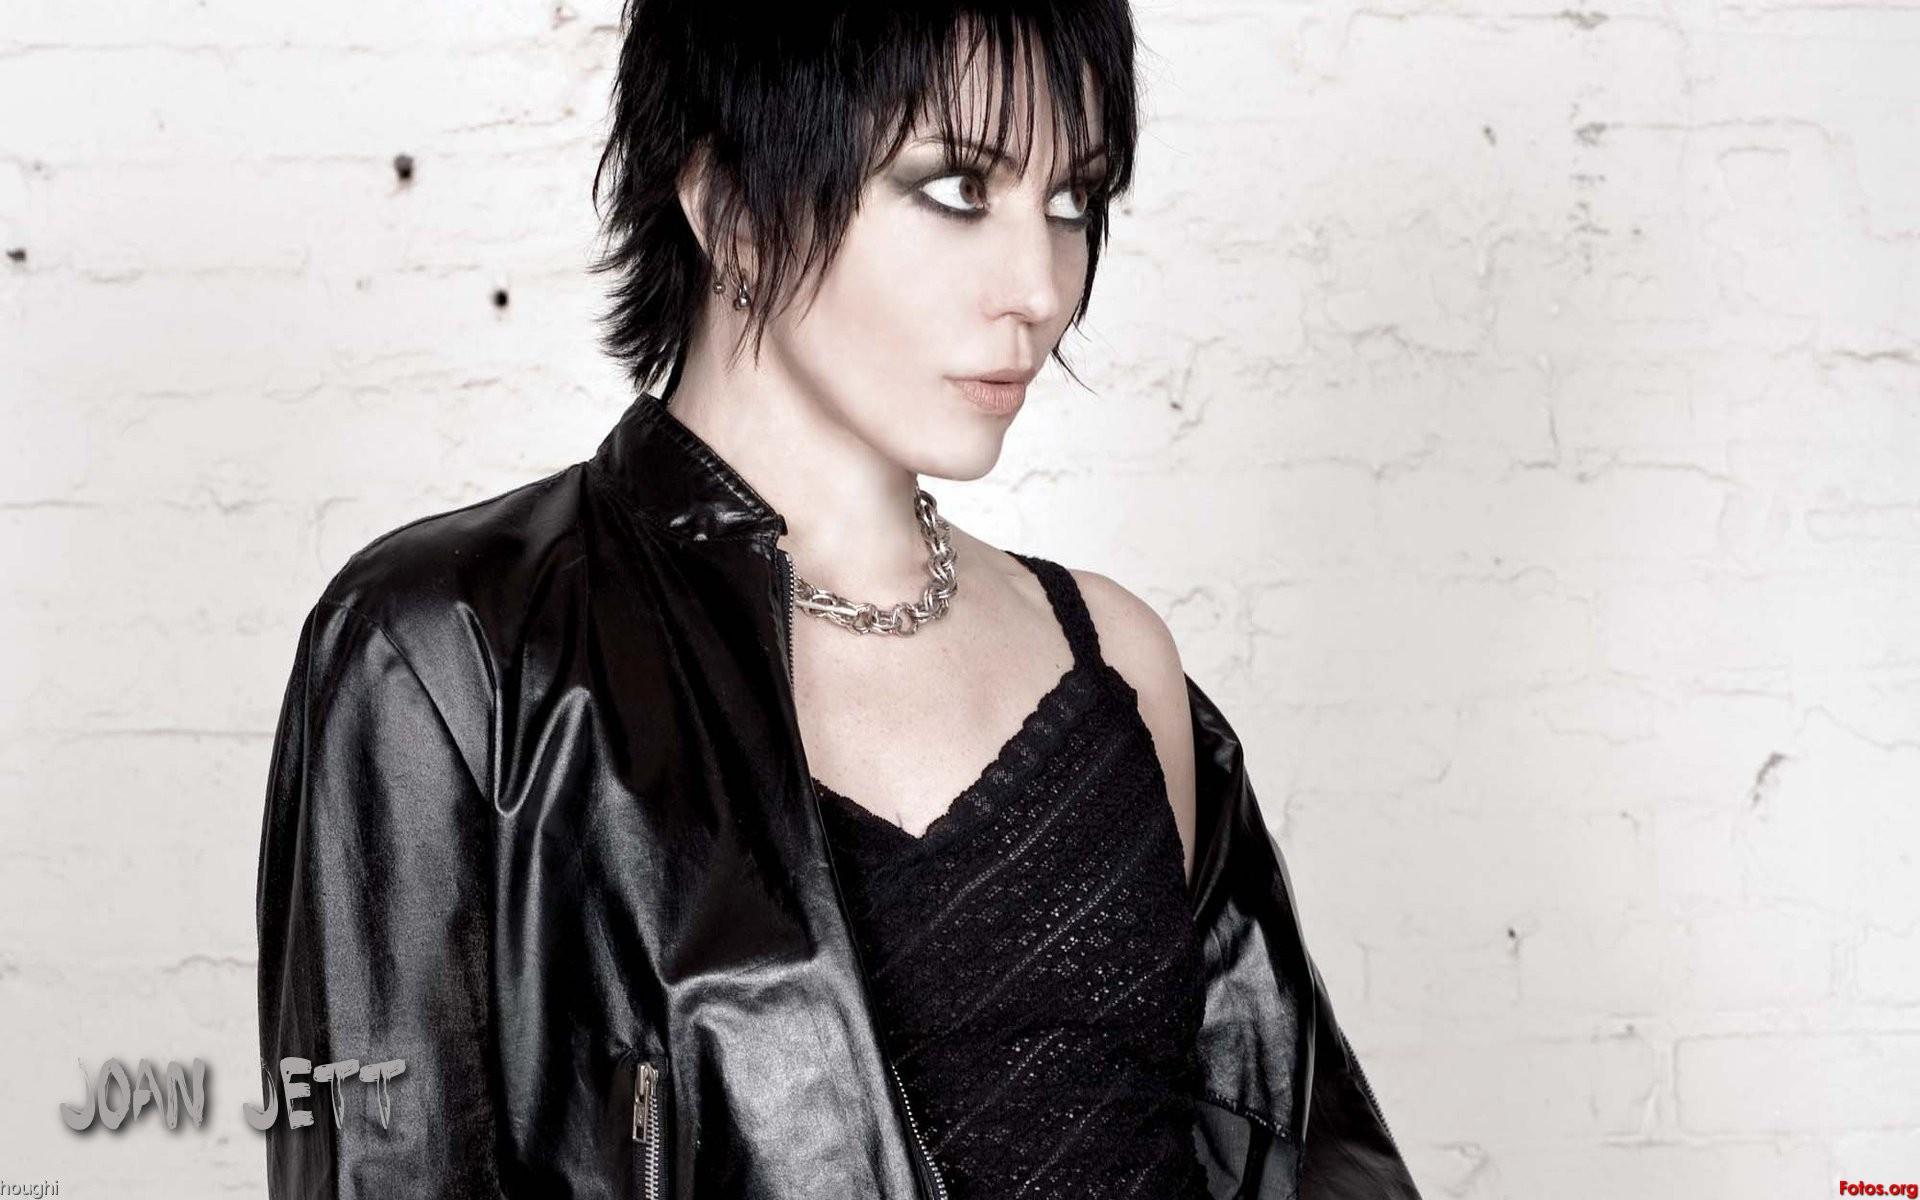 Joan Jett & The Blackhearts* Joan Jett And The Blackhearts - Greatest Hits